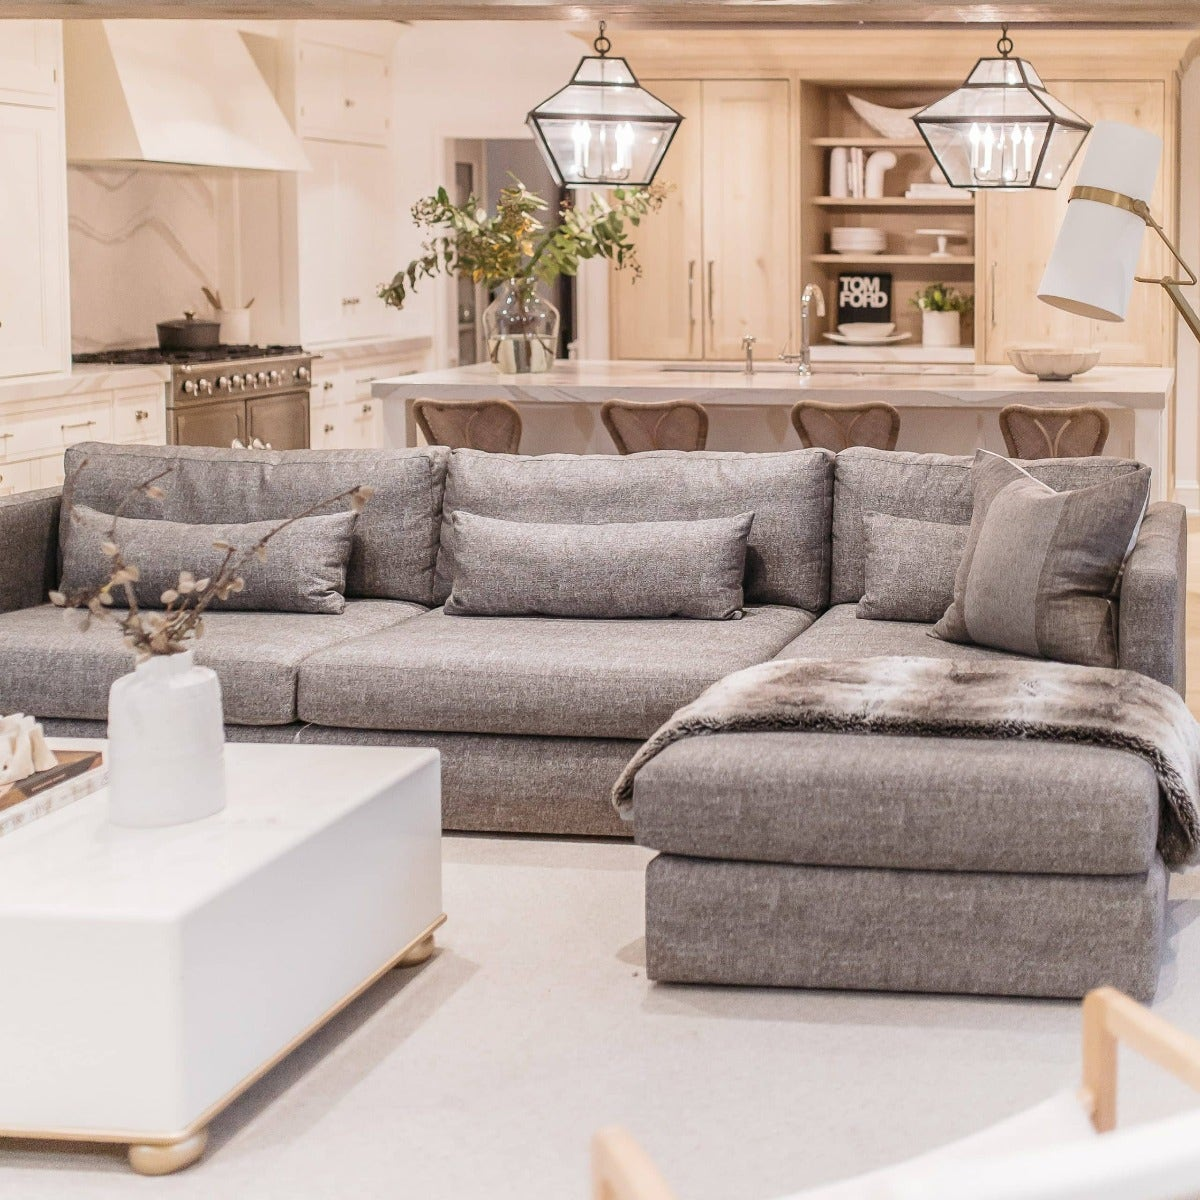 Sunbrella sectional from Mitchell Gold Bob Williams